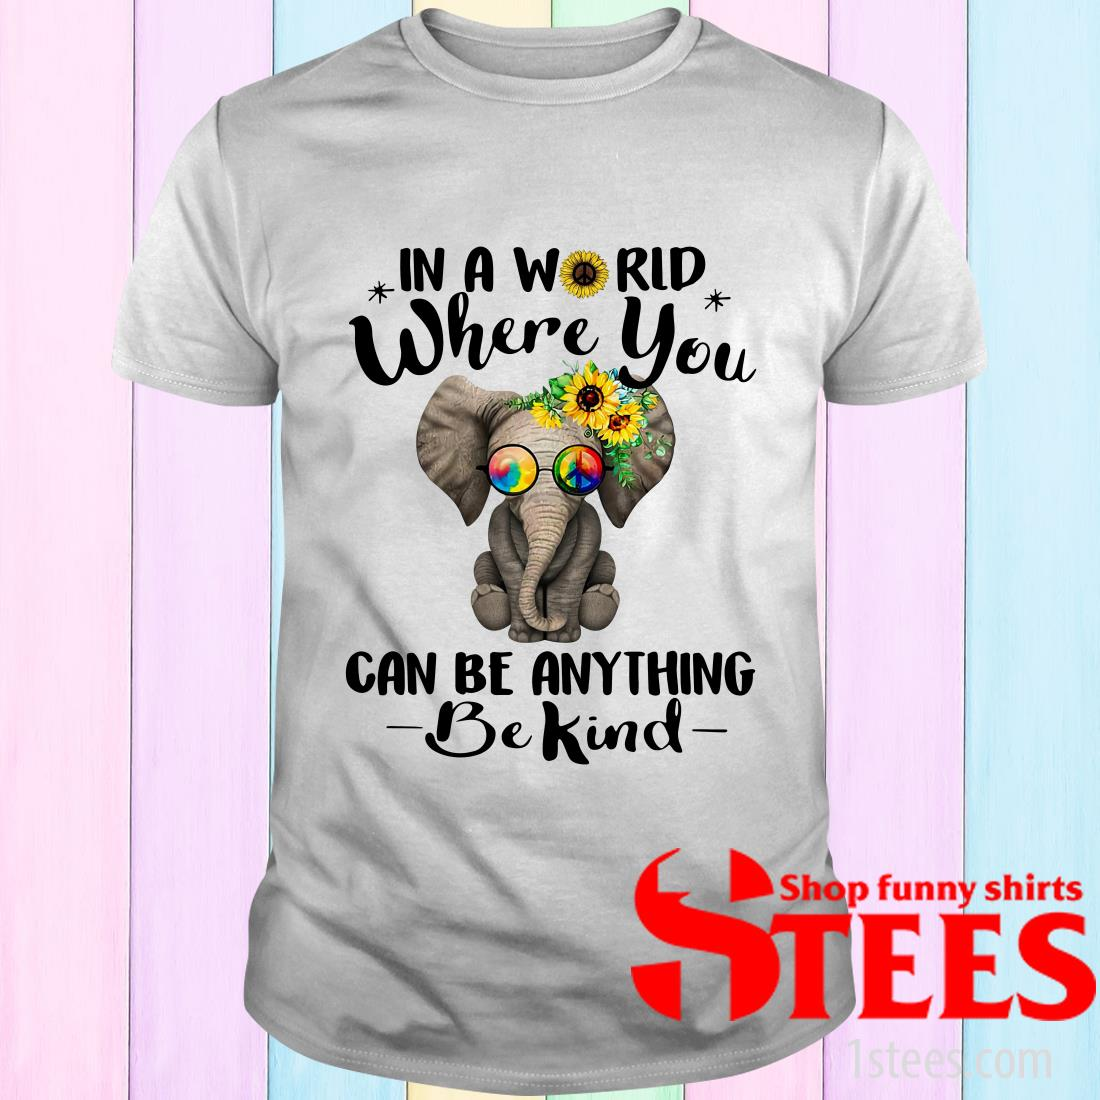 Hippie Elephant In A World Where You Can Be Anything Be Kind T-Shirt